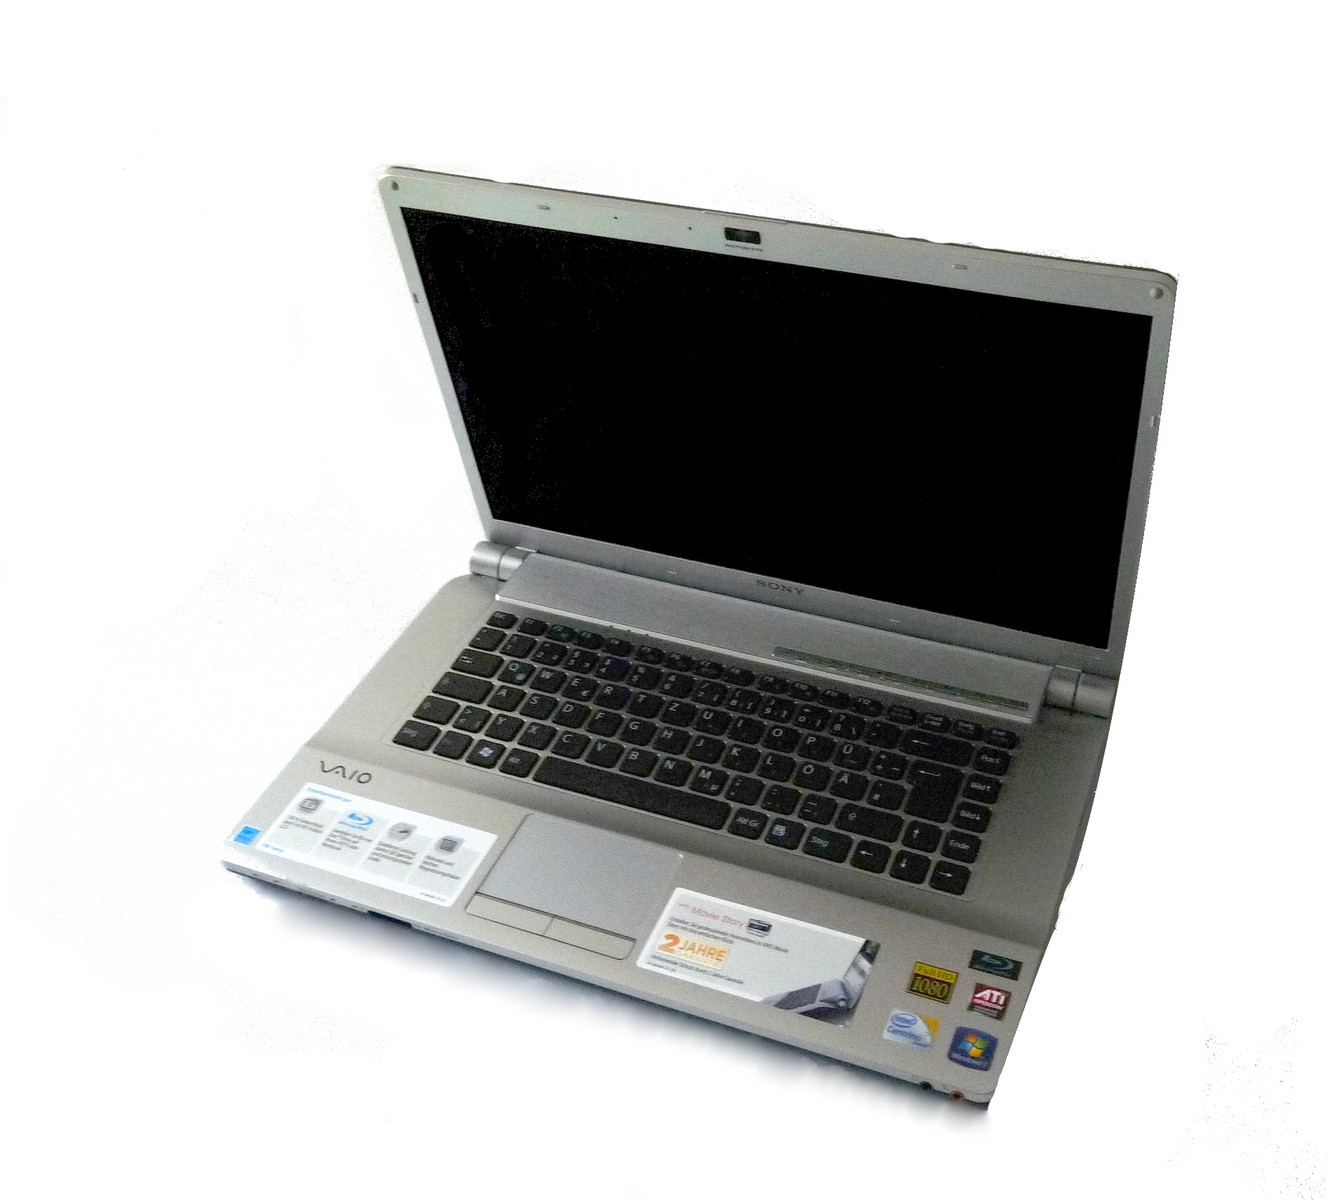 SONY VAIO VGN FW21L LAST DRIVERS FOR MAC DOWNLOAD